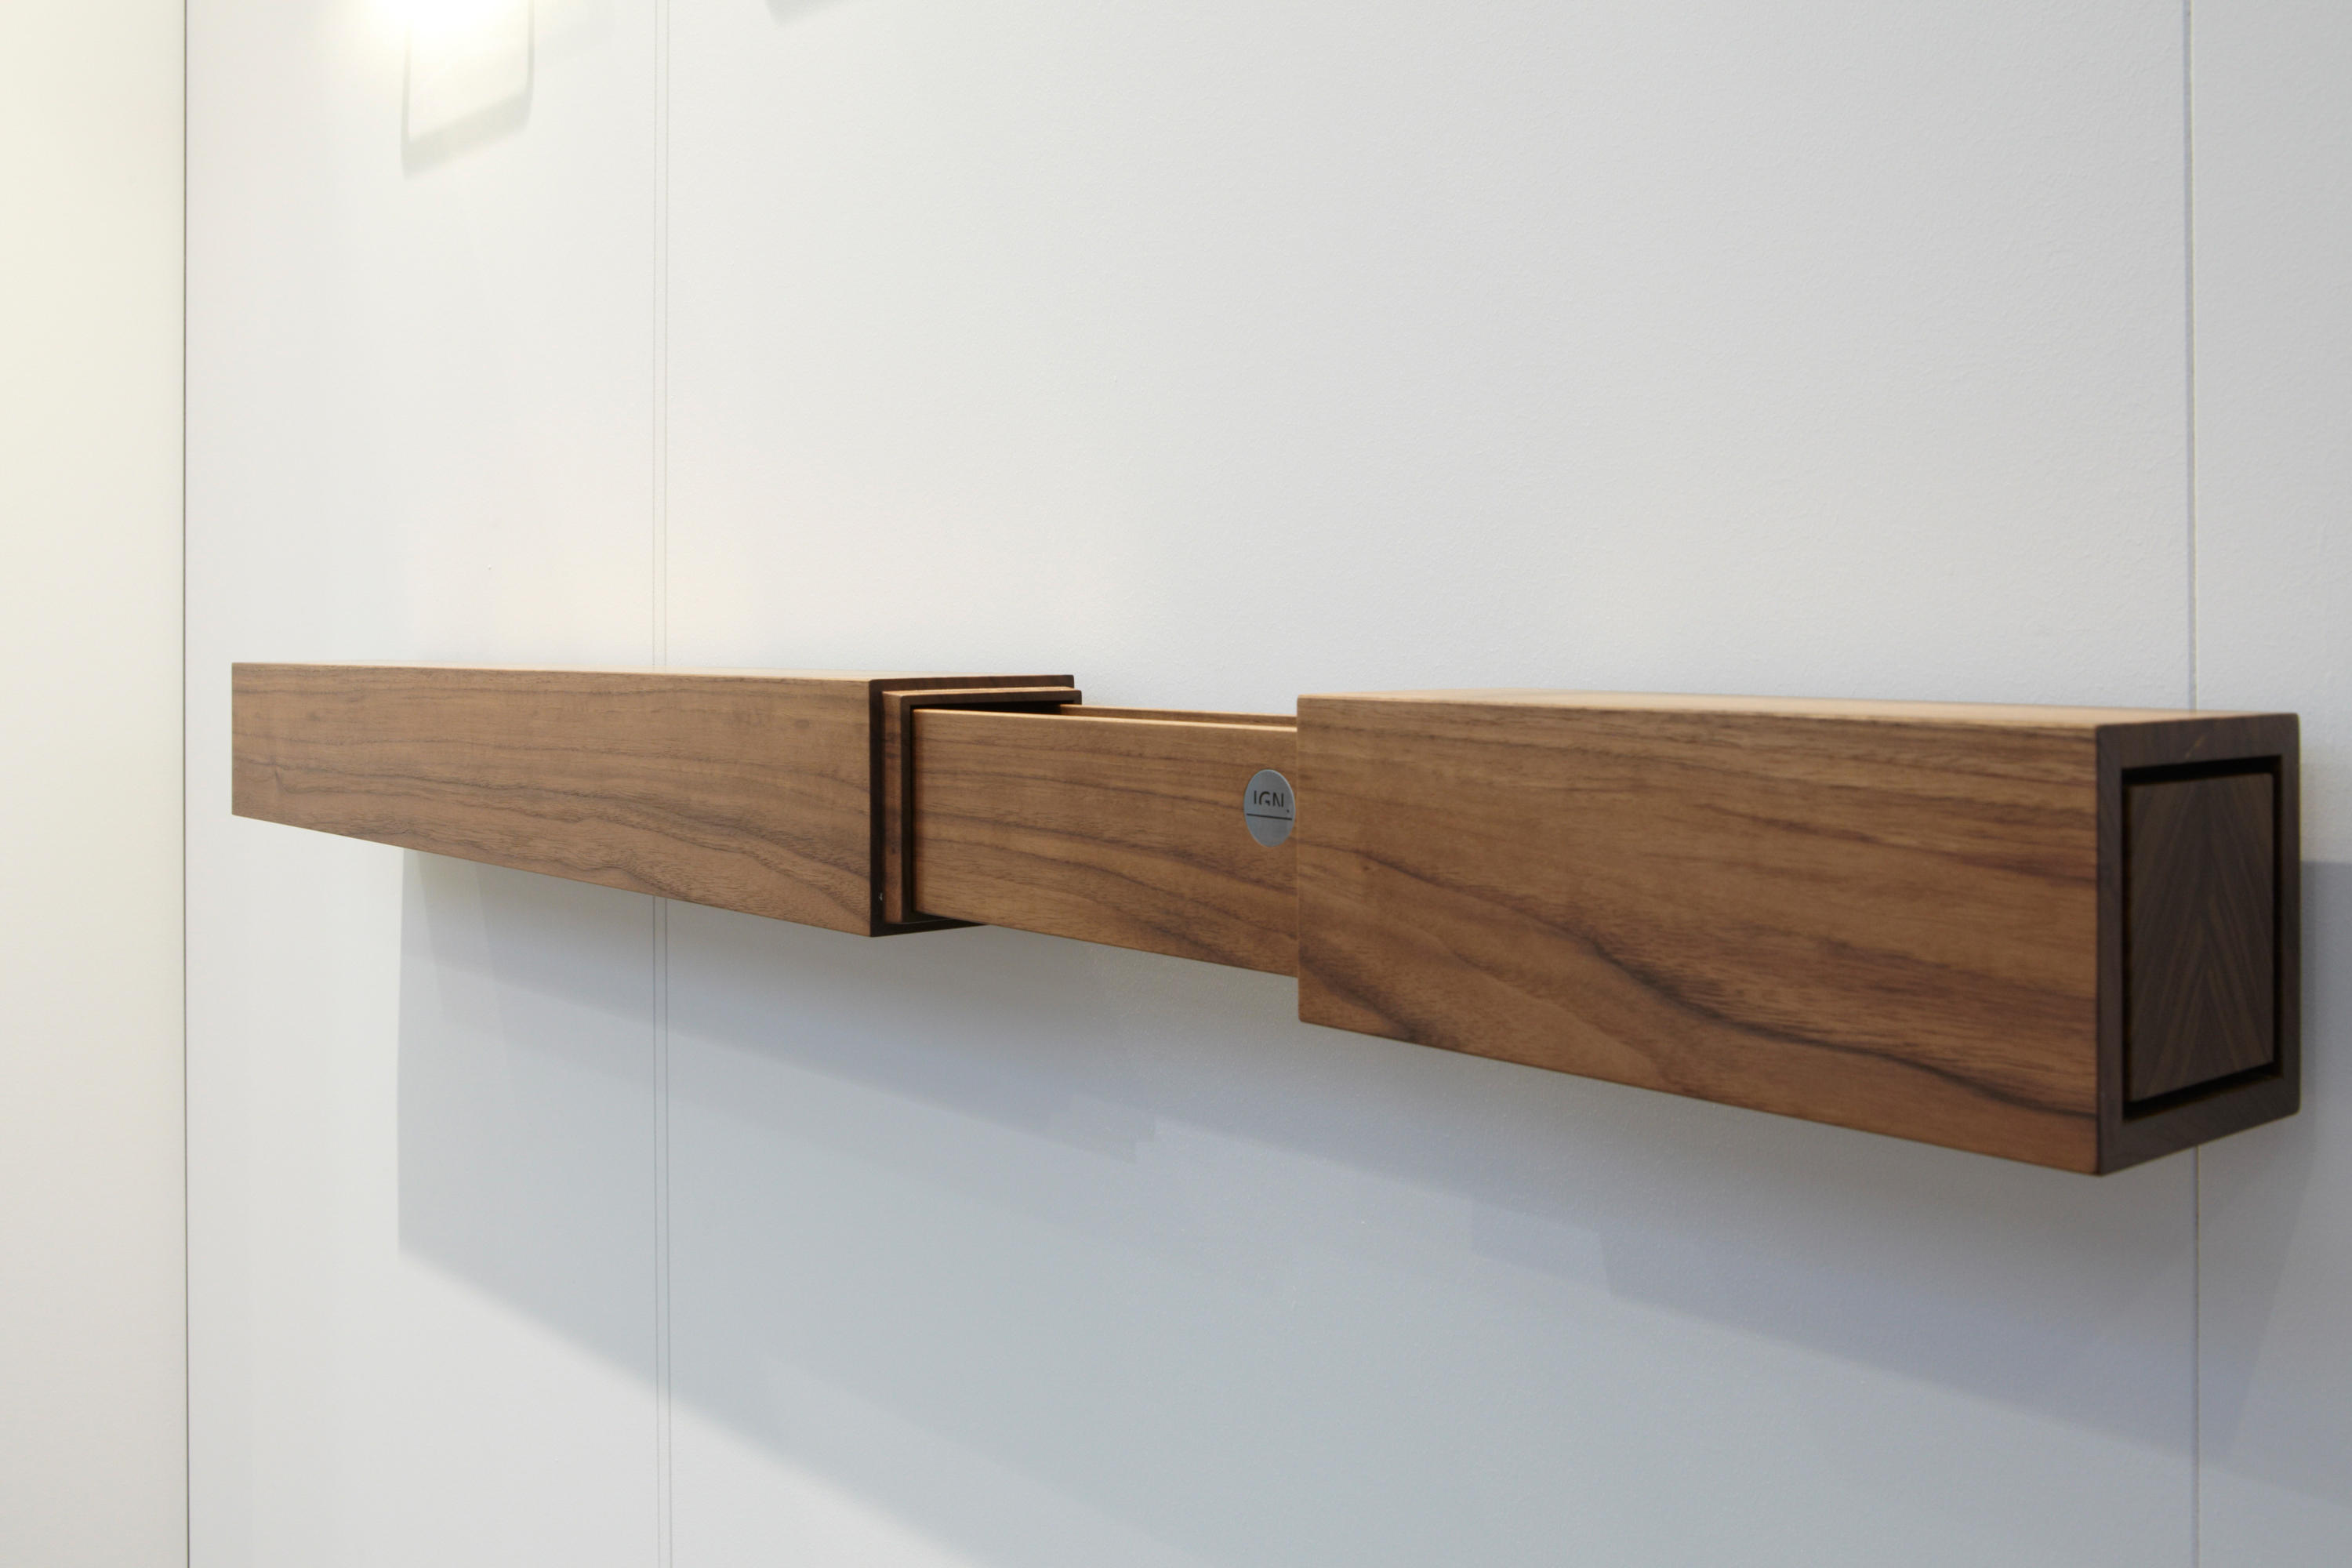 Ign Longbox Shelving From Ign Design Architonic